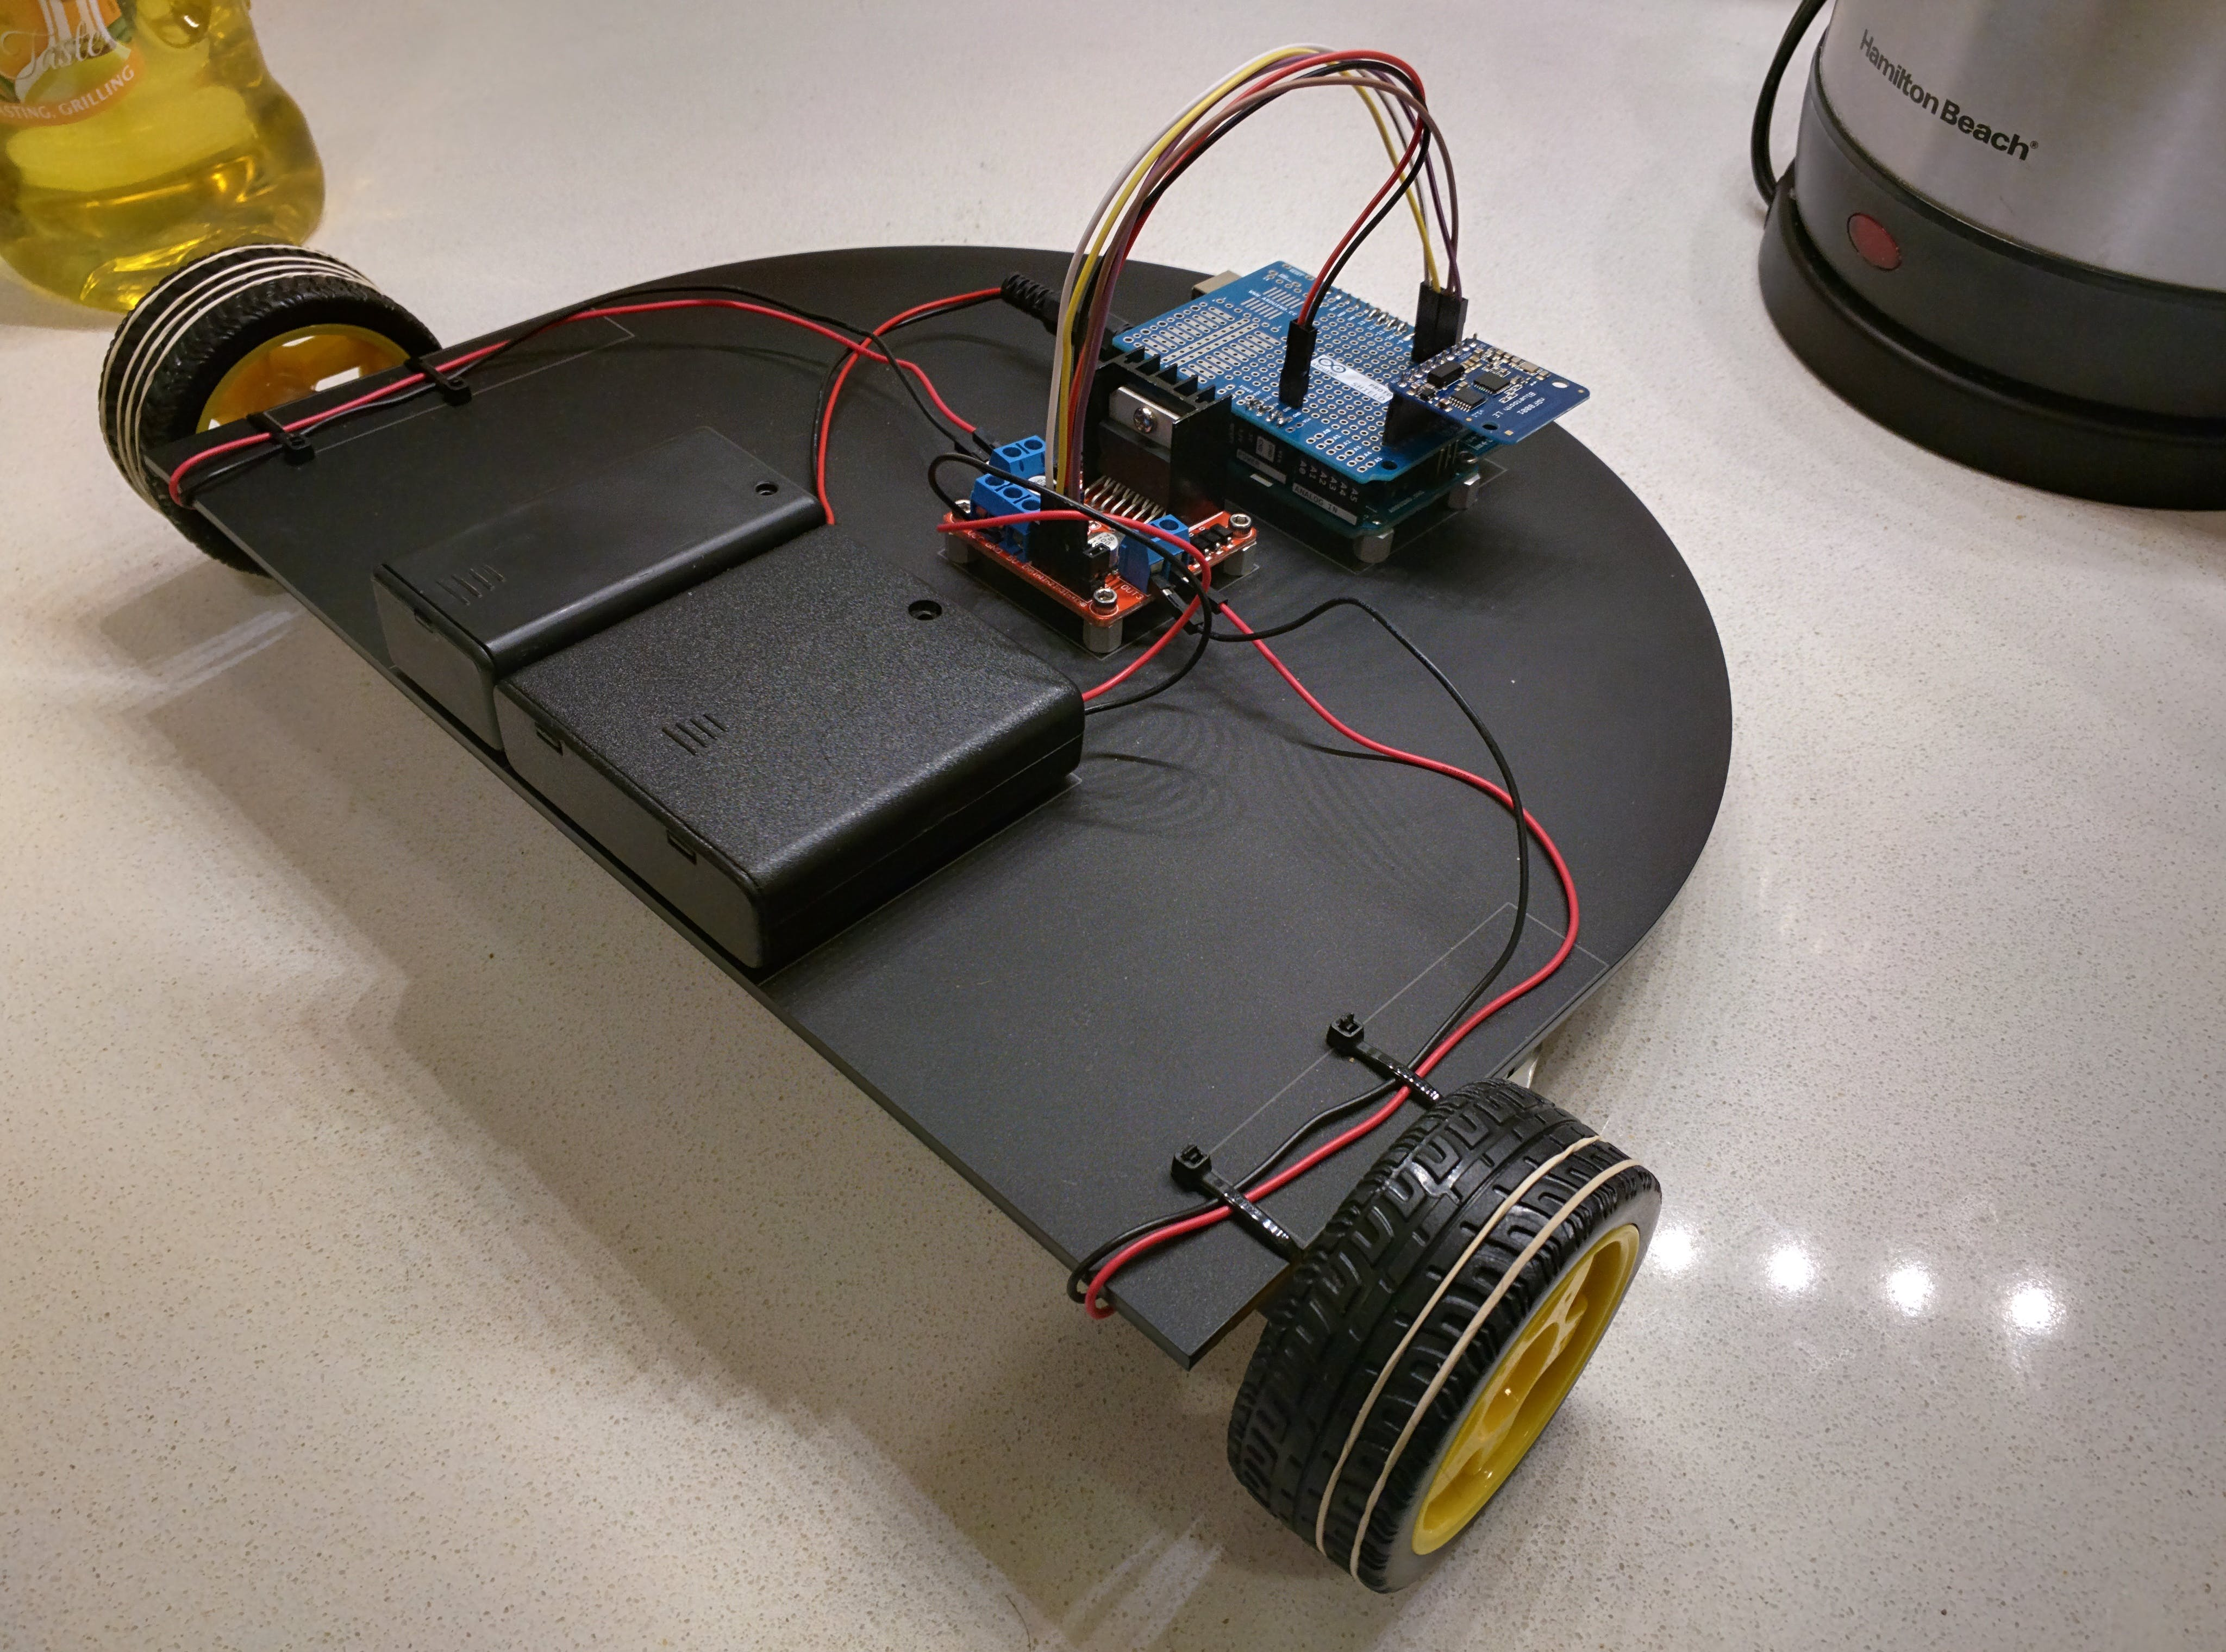 HW 7: Bluetooth Controlled Vehicle